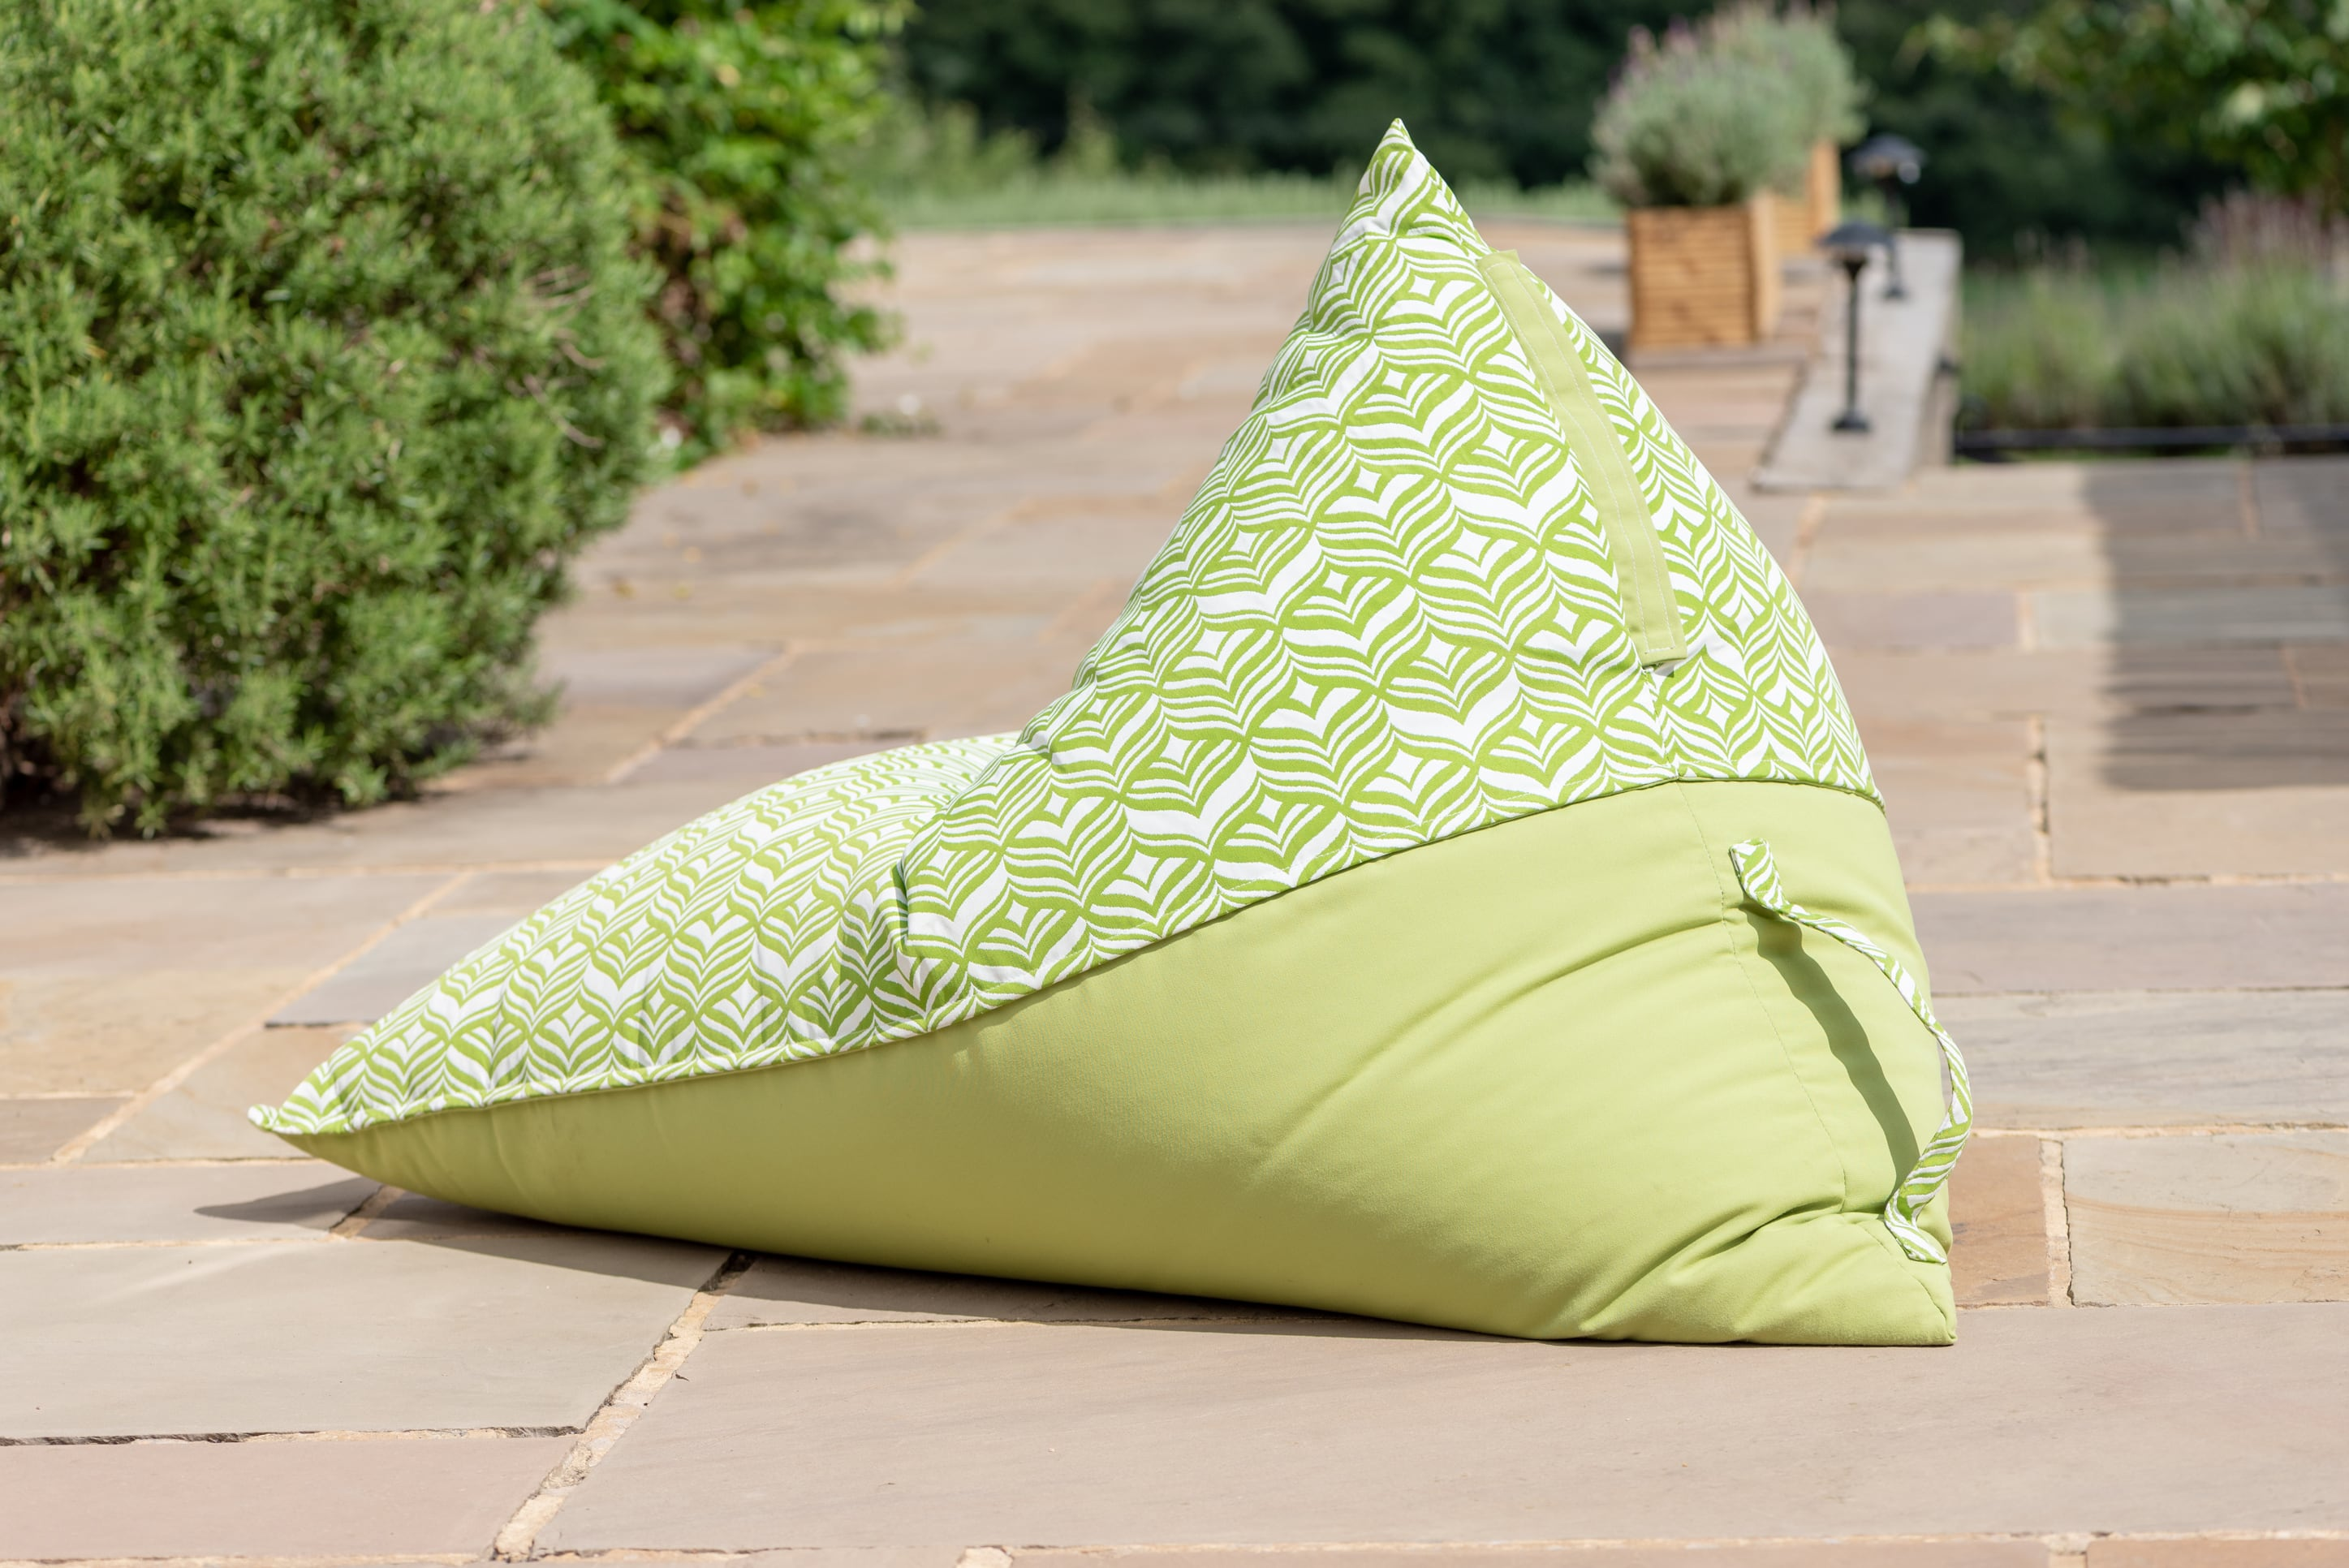 Bean Bag Chair in Tulip Green Bean Bag Chair armadillosun